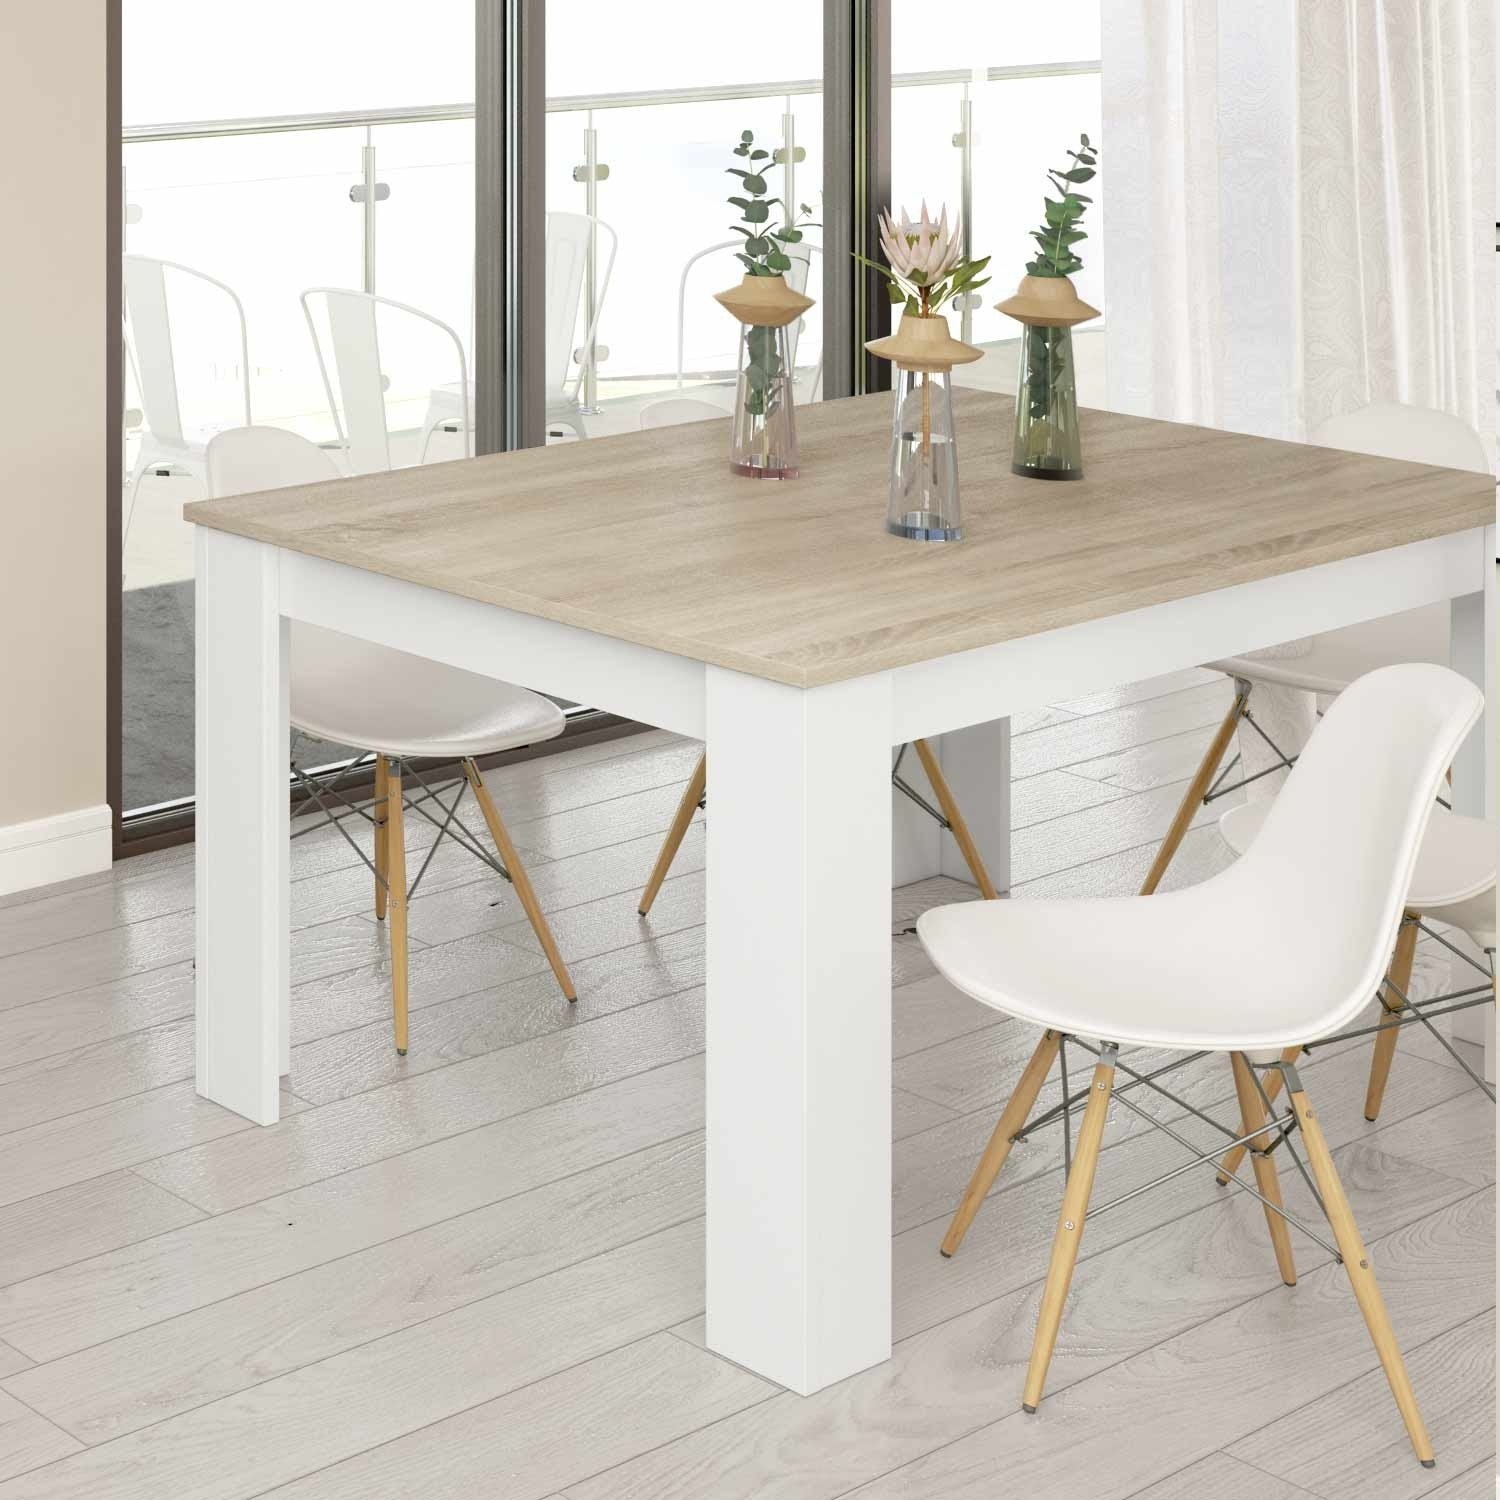 Image of: Mesa De Jantar Extensivel Nordik Vendamoveisonline